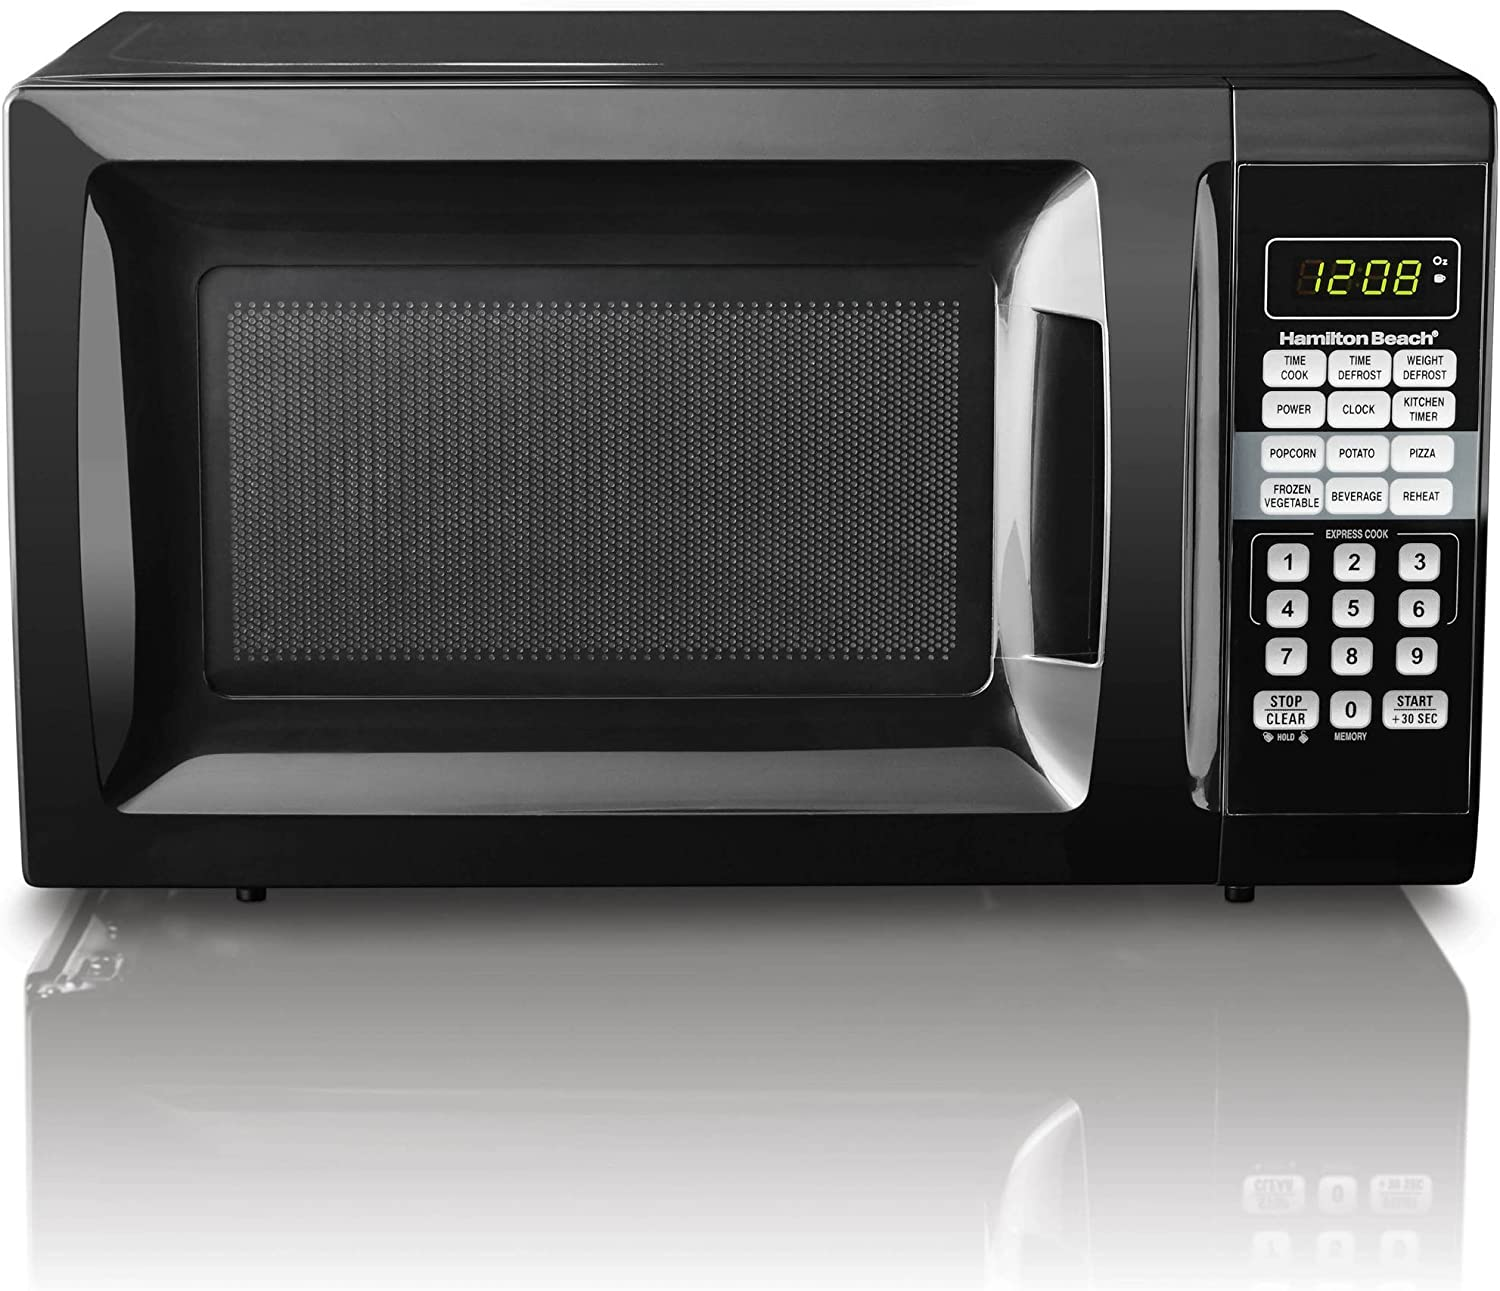 Amazon.com: Hamilton Beach 0,7 Cu pies Horno de ...